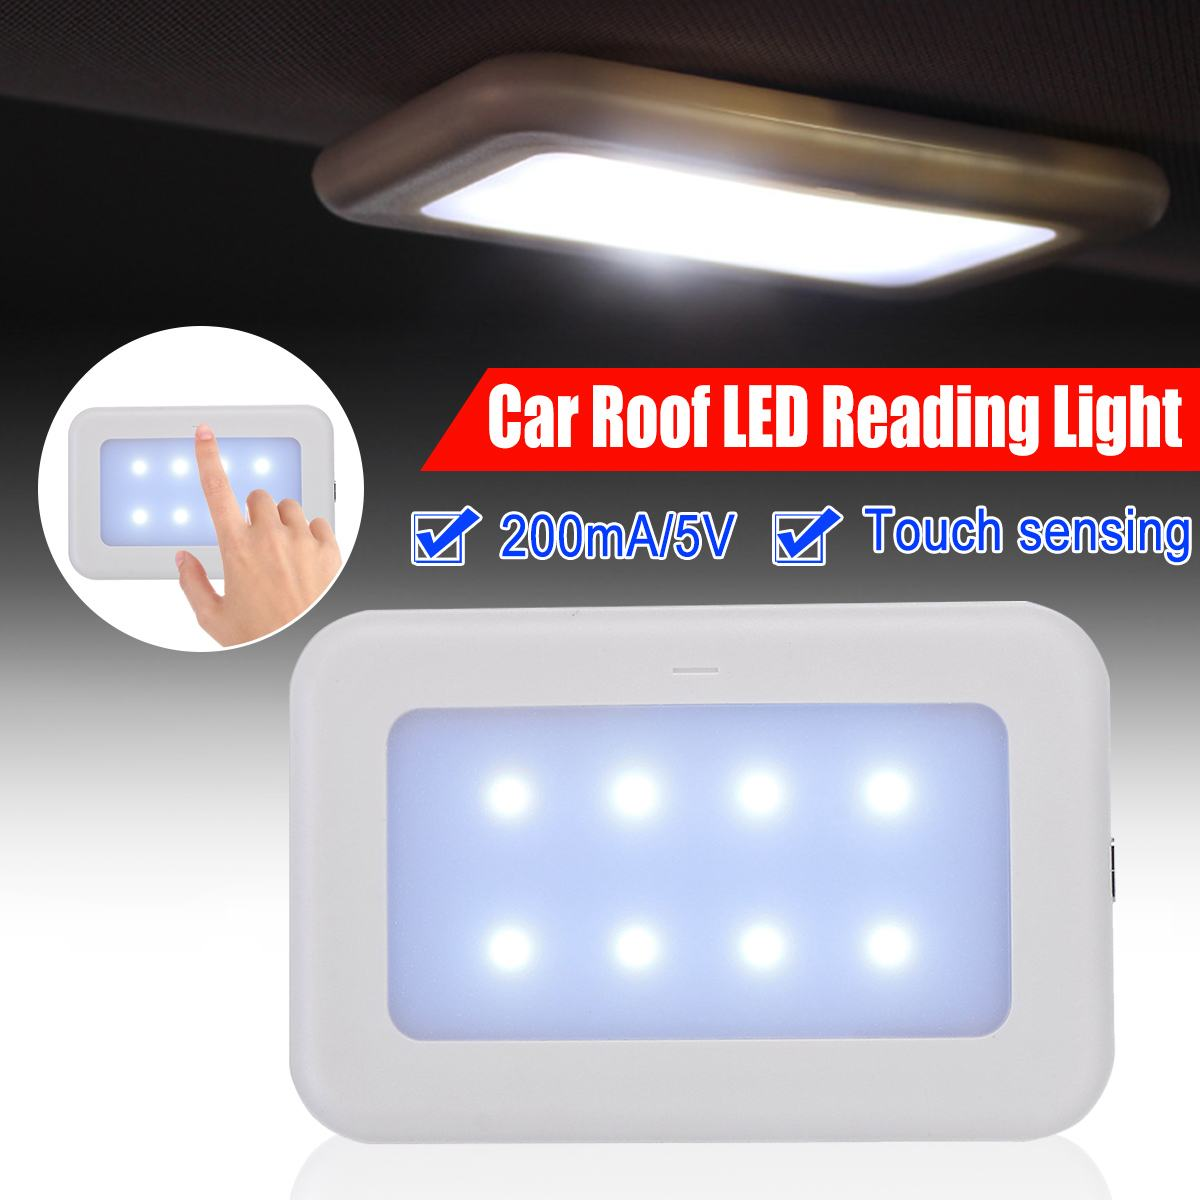 Universal-USB Rechargeable LED Reading Light Portable Car Interior Dome Roof Ceiling Lamp Magnet Adsorption LED Night Light